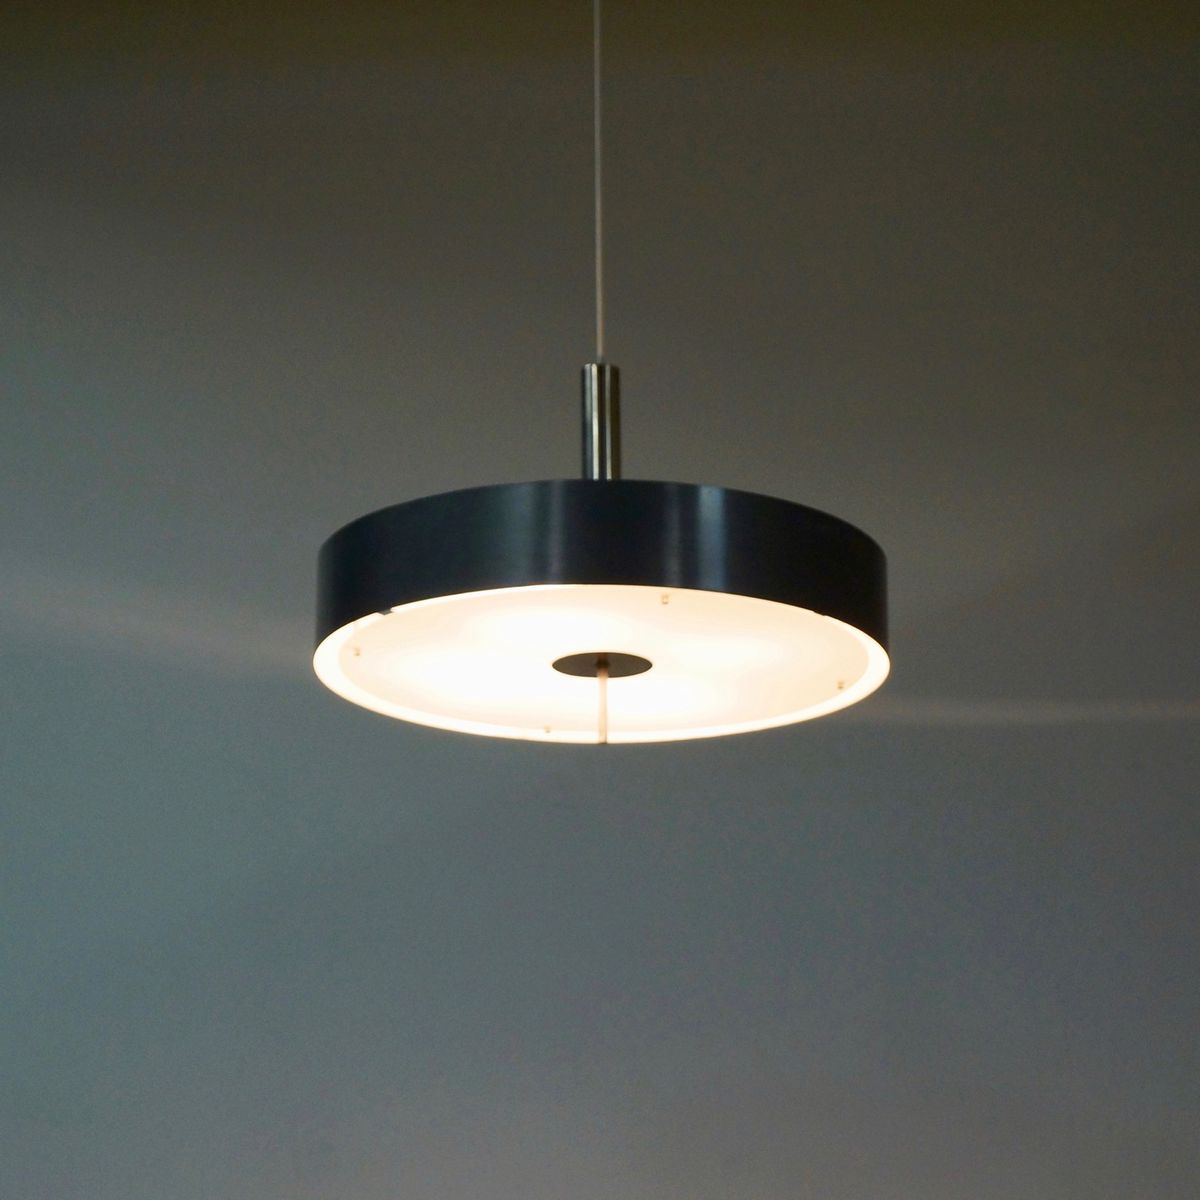 ceiling old lighting my suspended lights with what to condo before kitchen beach do cocoa drop light remodel ceilings